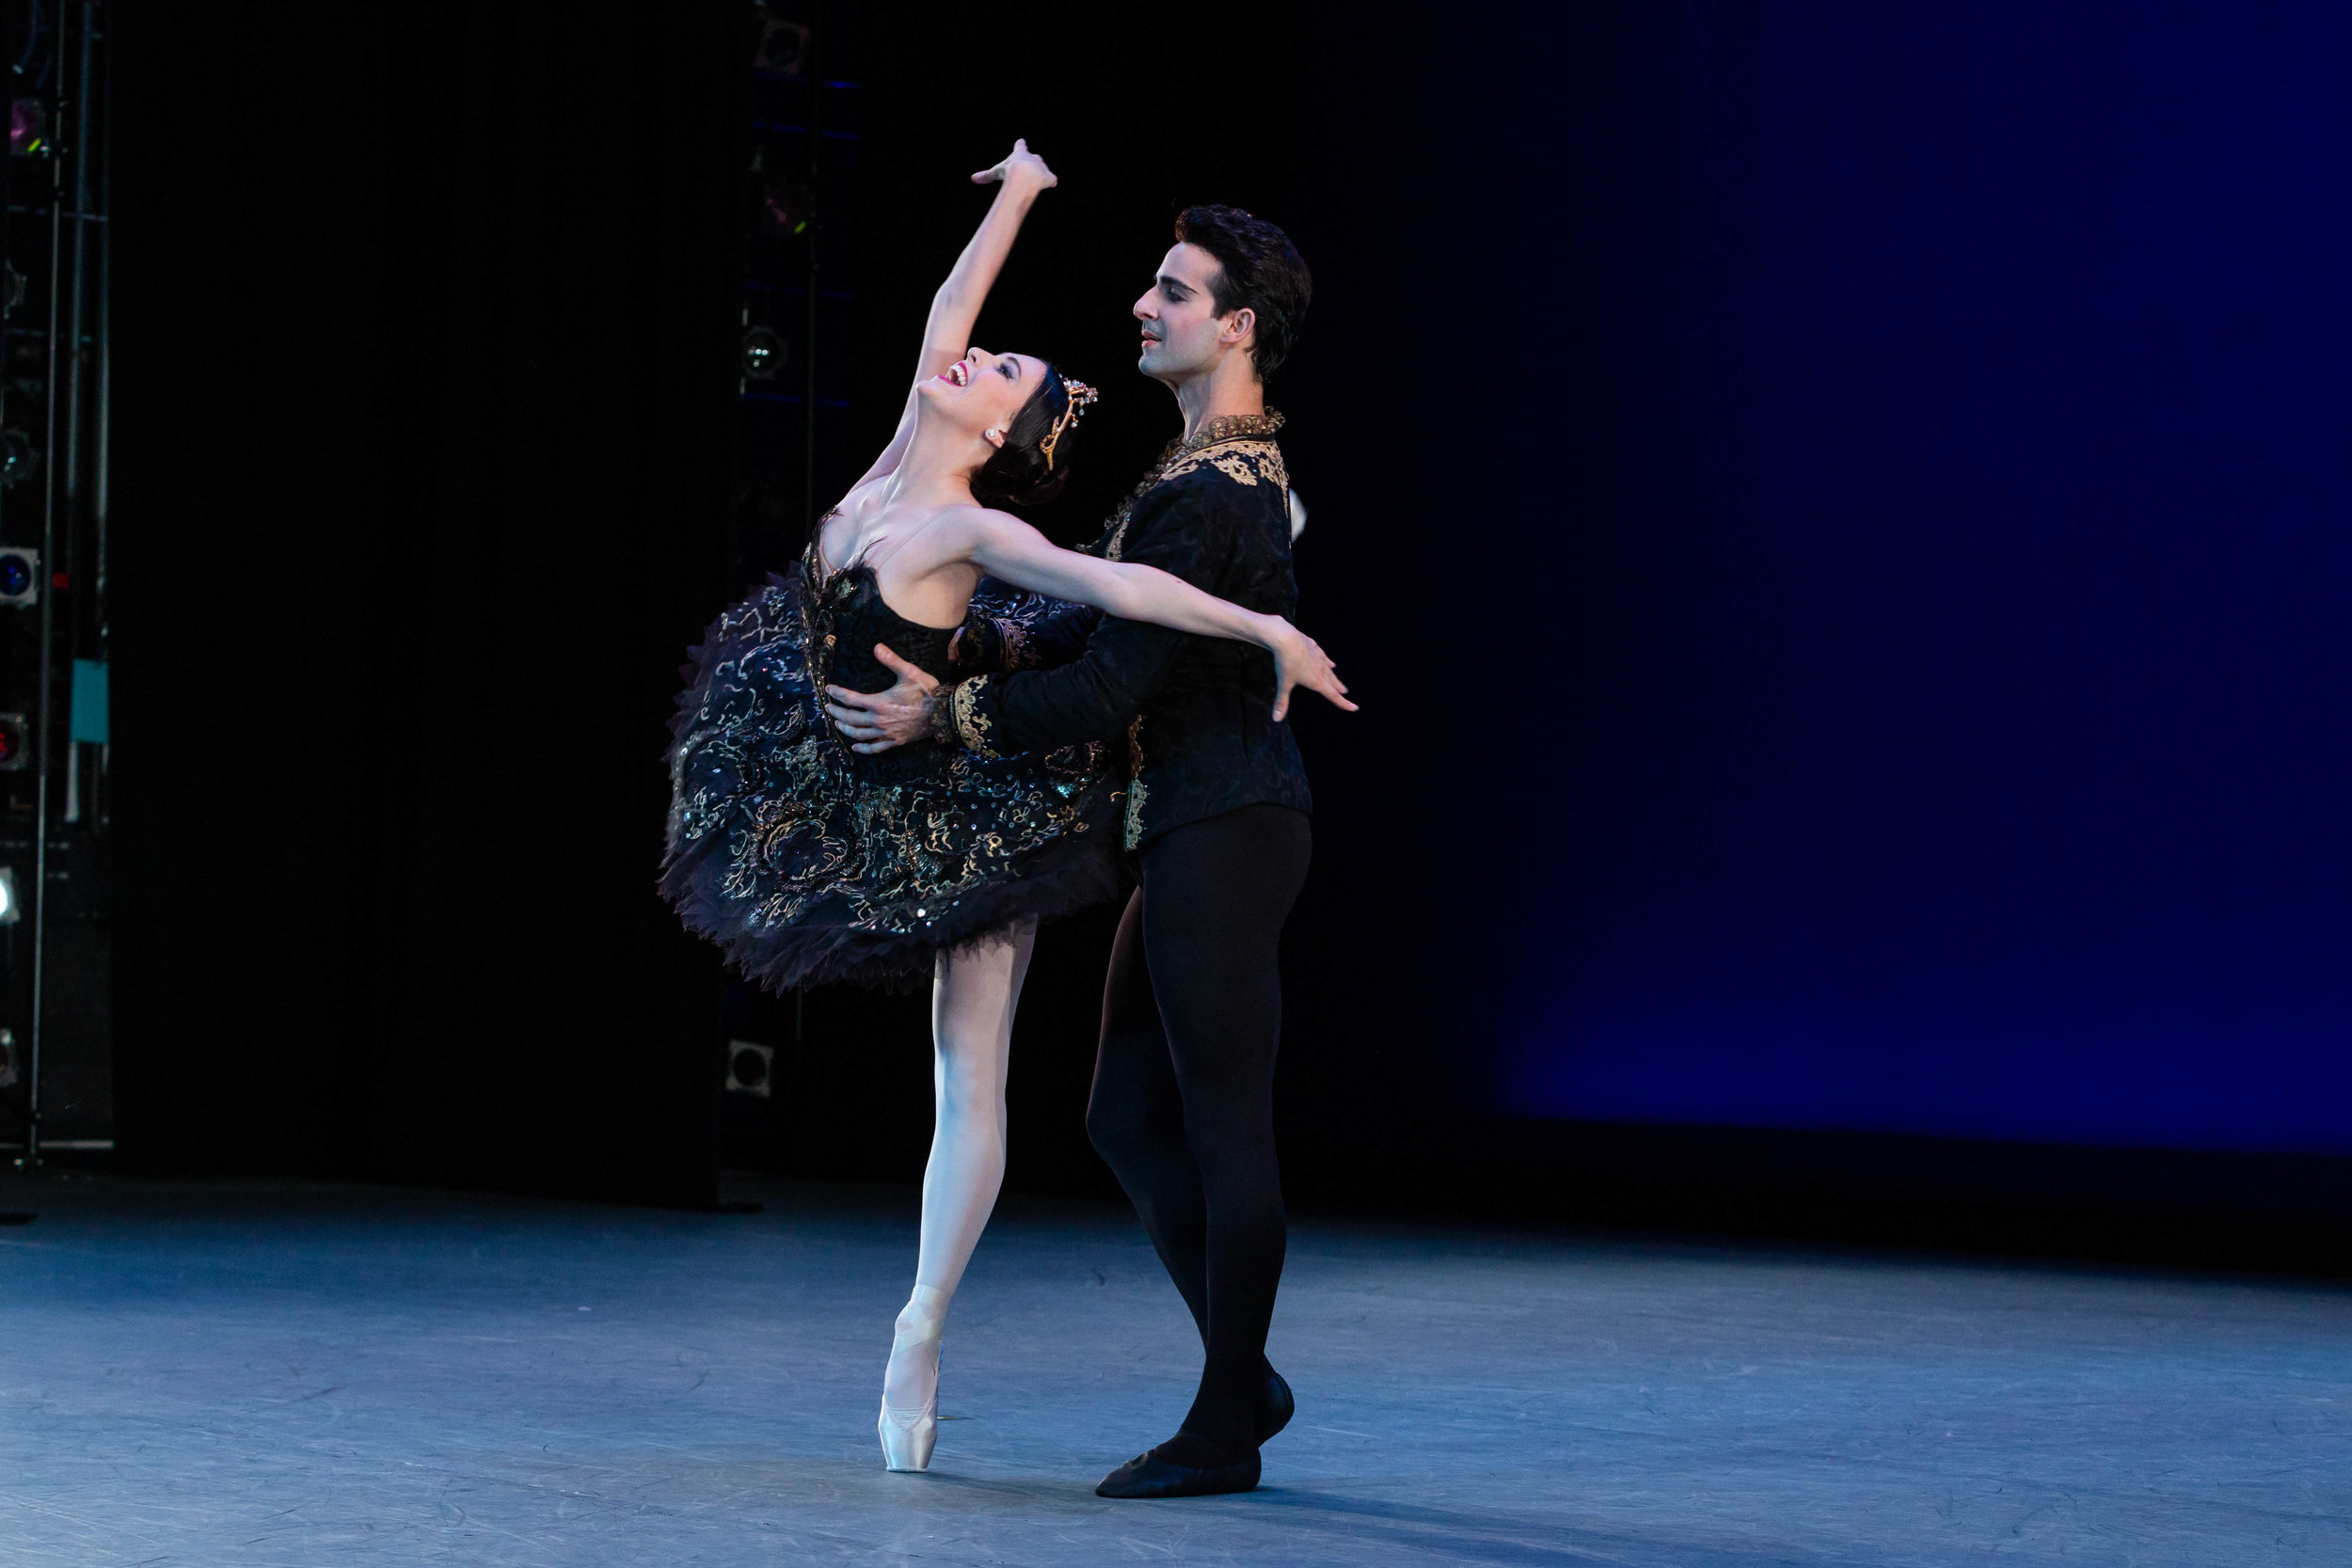 Katherine Barkman with Rolando Sarabia in the  Black Swan  pas de deux at The Washington Ballet. Photo by Mena Brunette of XMB Photography.